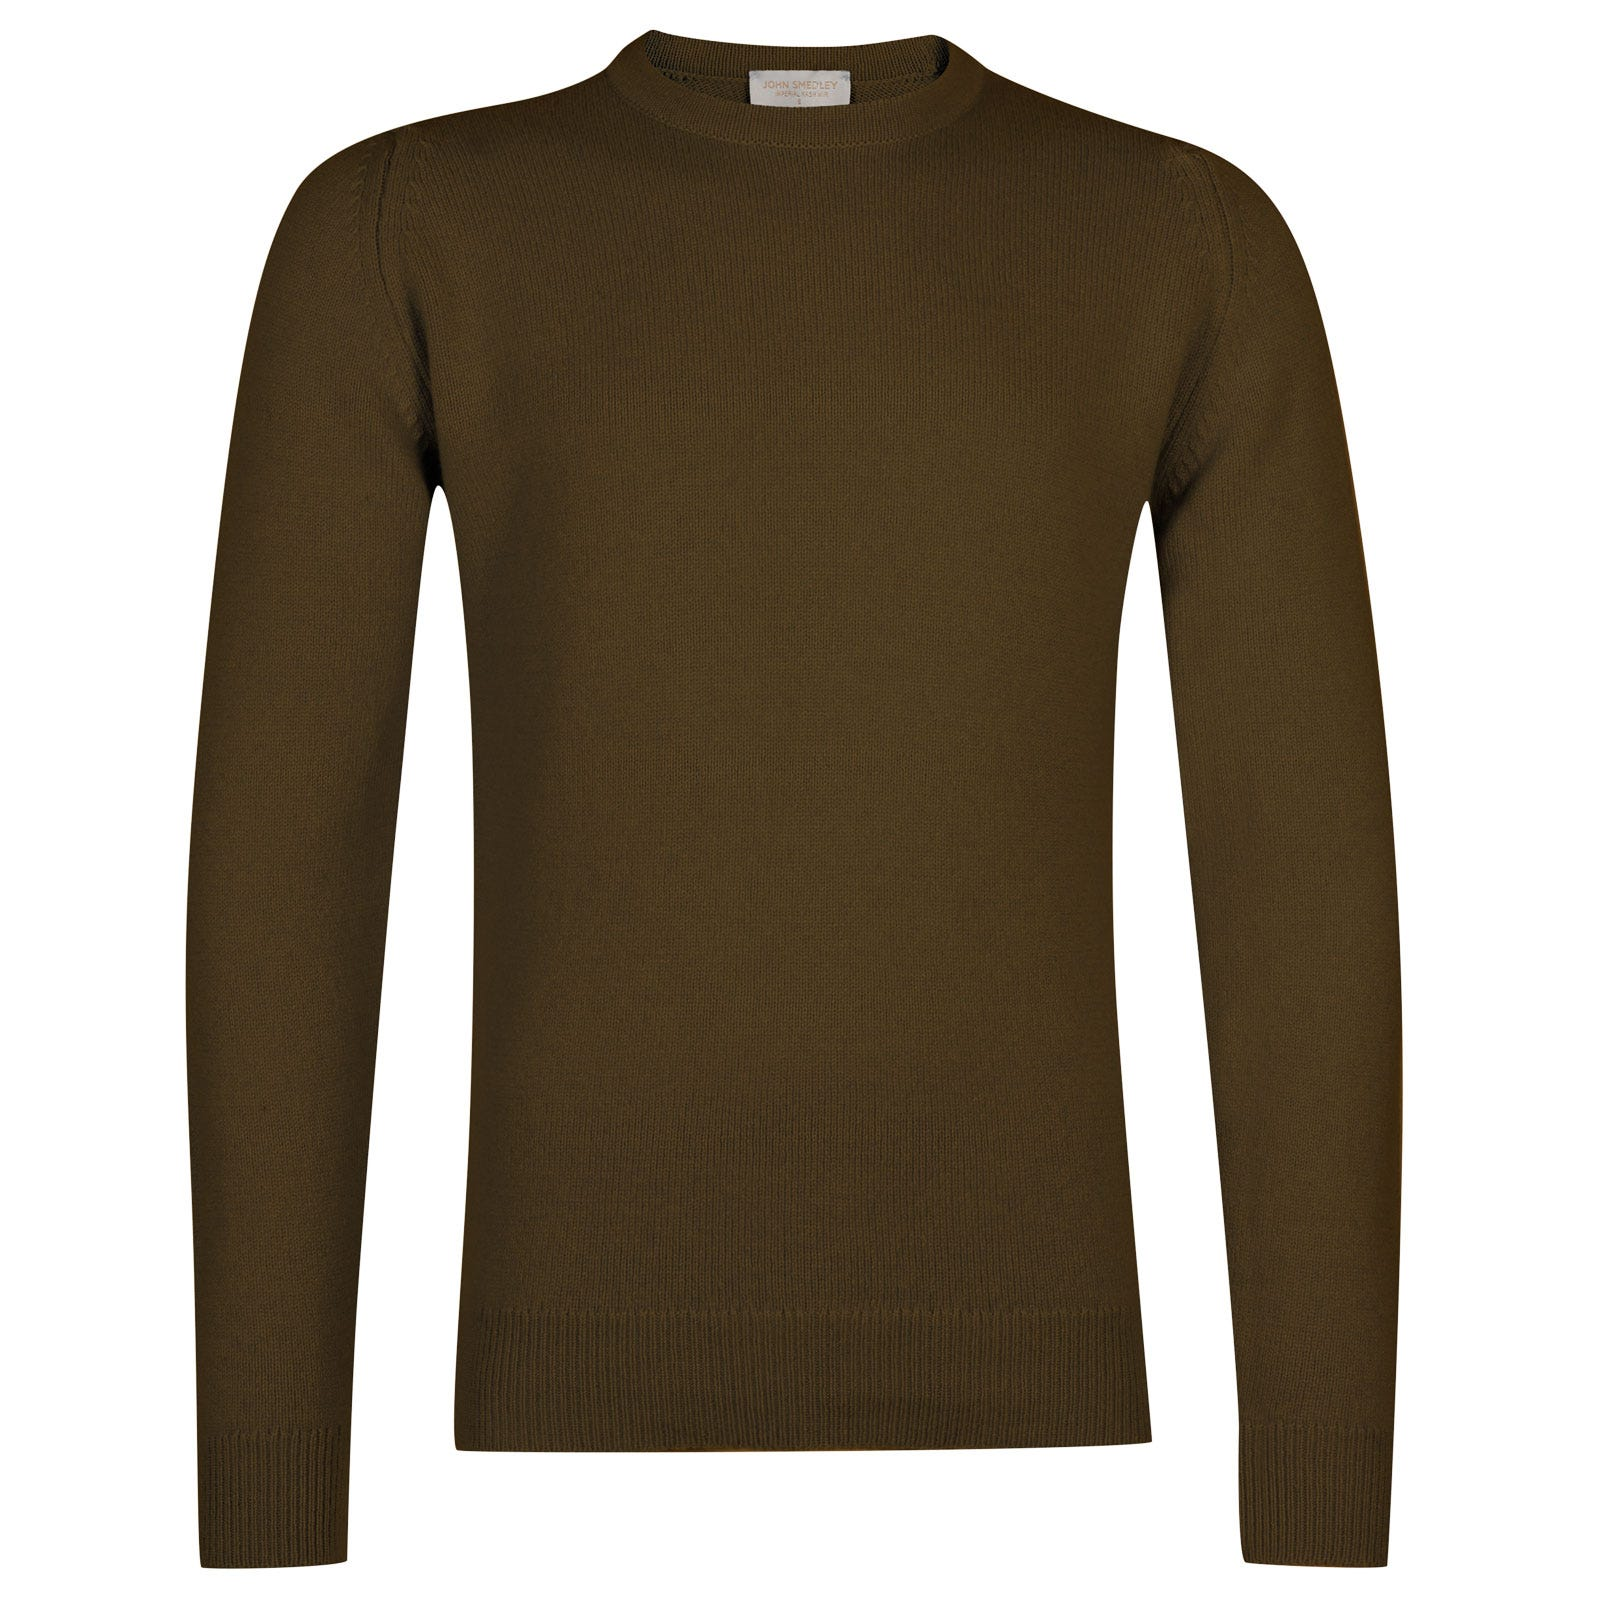 John Smedley Crowford Wool and Cashmere Pullover in Kielder Green-XL